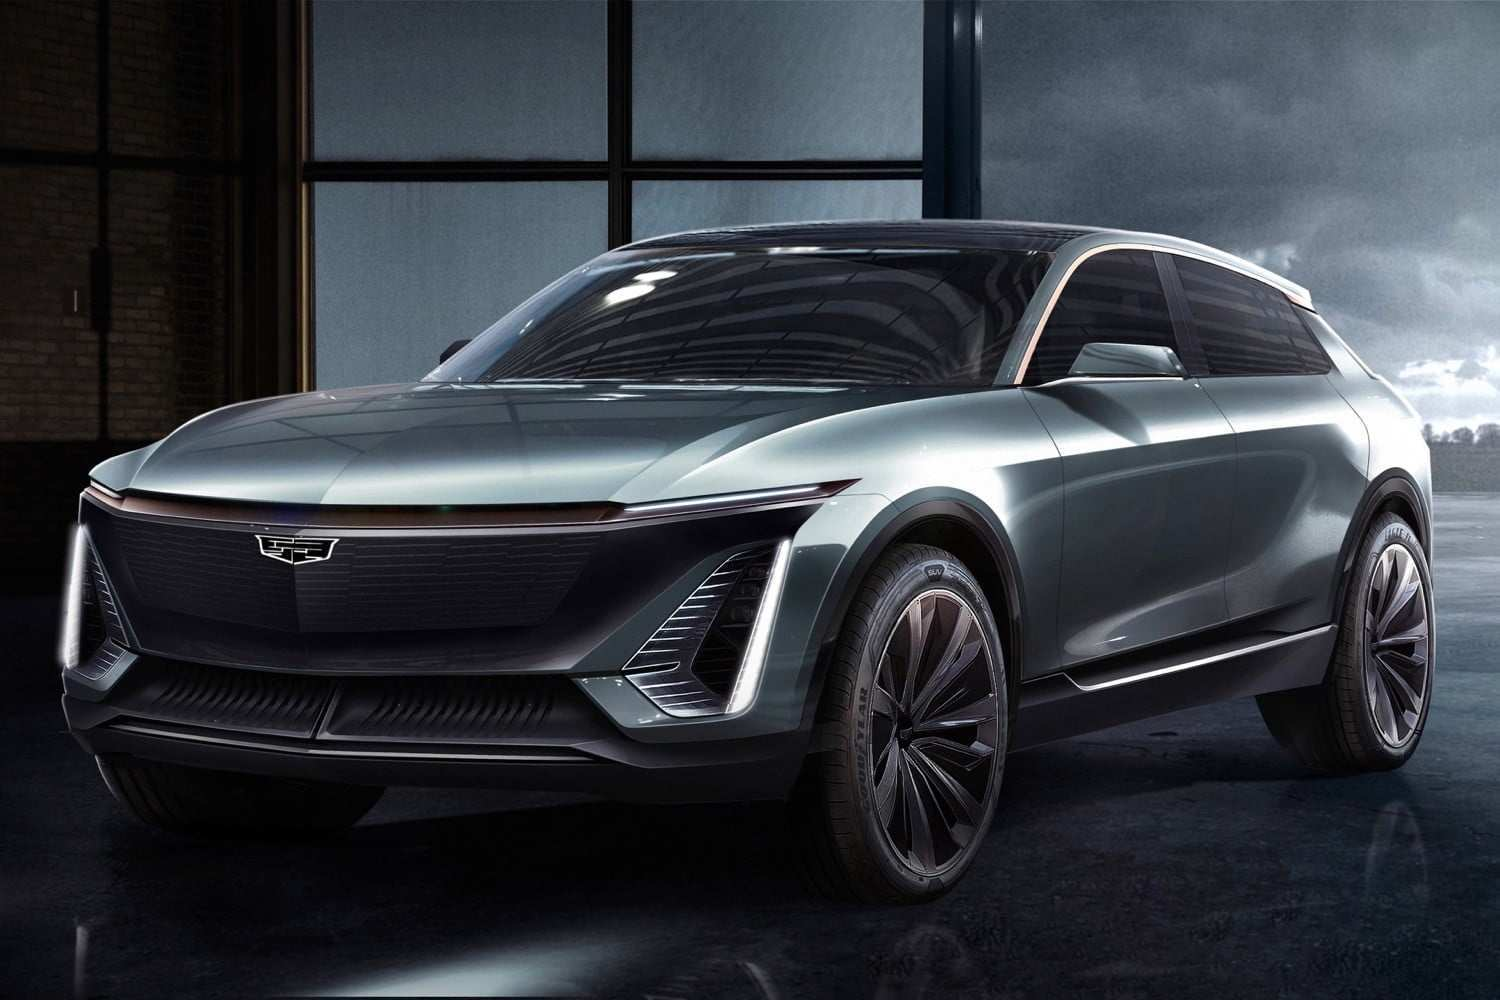 18 All New New Cadillac For 2019 New Concept Review for New Cadillac For 2019 New Concept